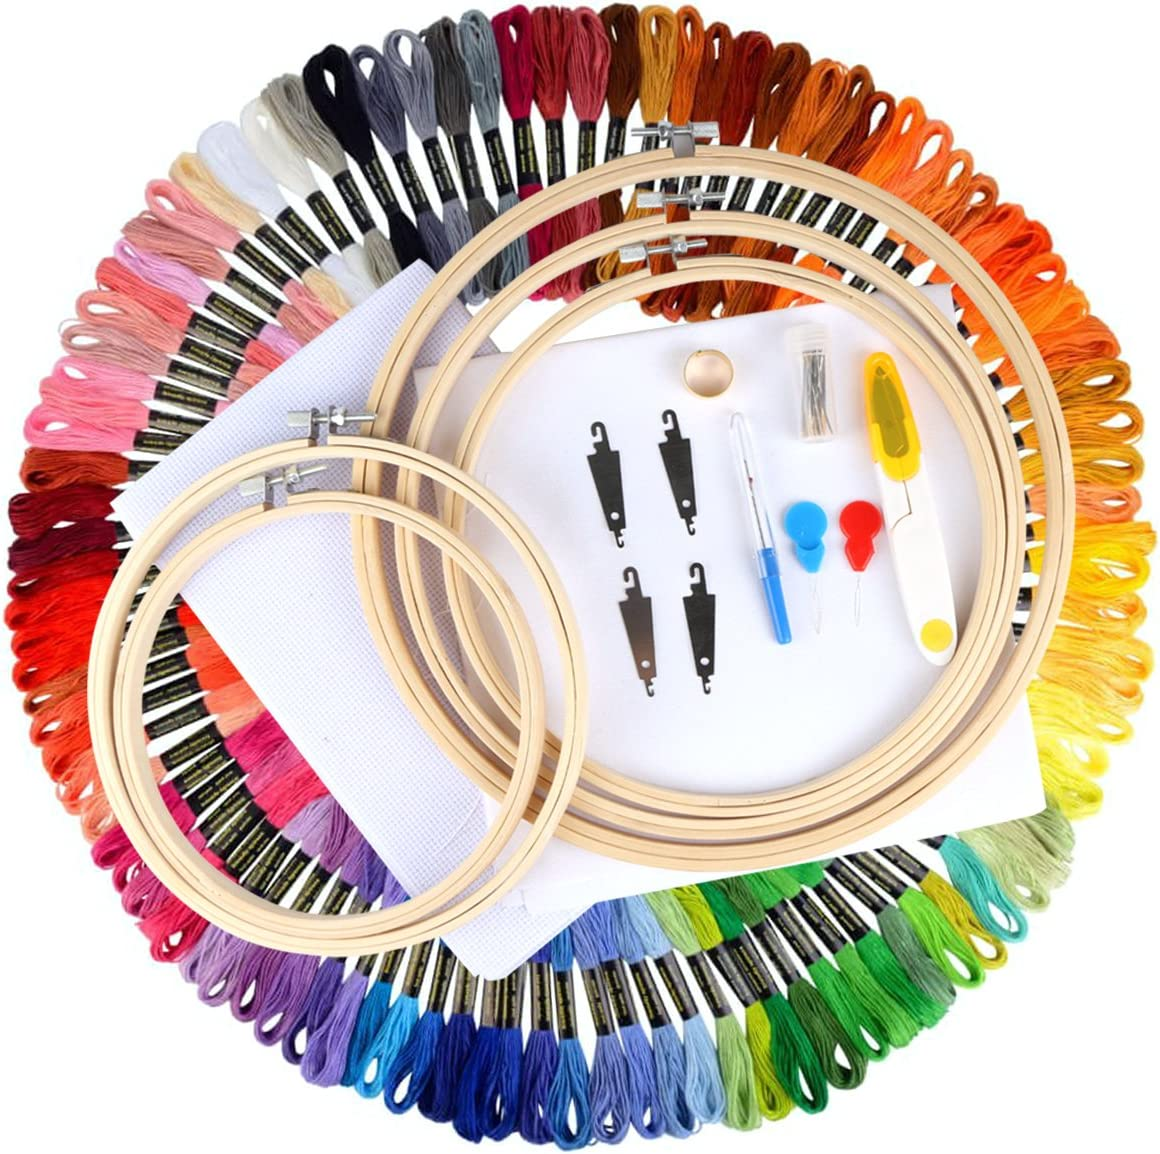 Wartoon Full Range of Cross Stitch Tool Kit Including 8 Inch Bamboo Embroidery Hoop Embroidery Starter Kit 50 Color Threads 12 by 18-Inch 14 Count Classic Reserve Aida and Tool Kit